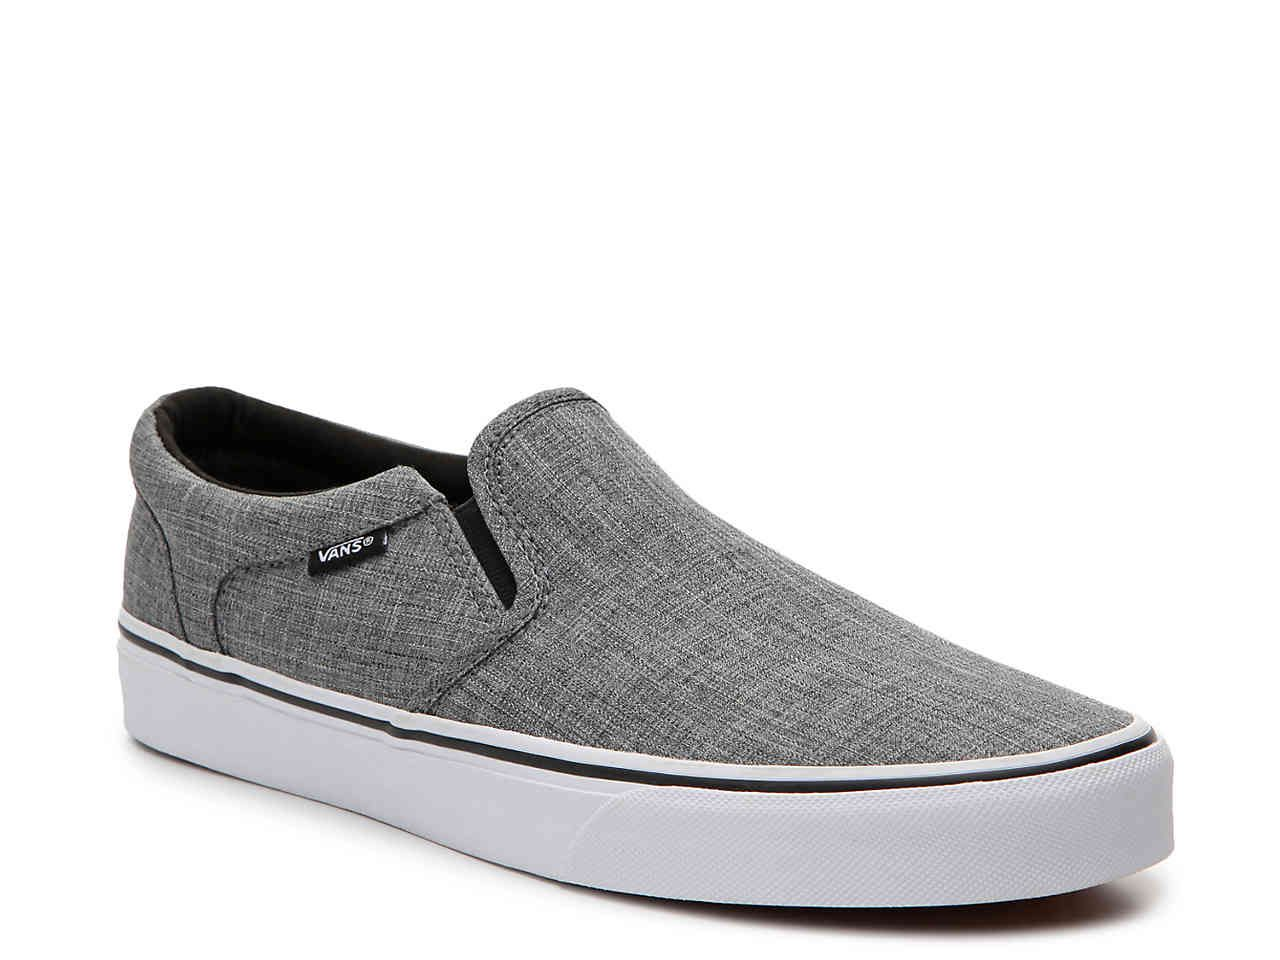 Mens grey shoes, Sneakers outfit men